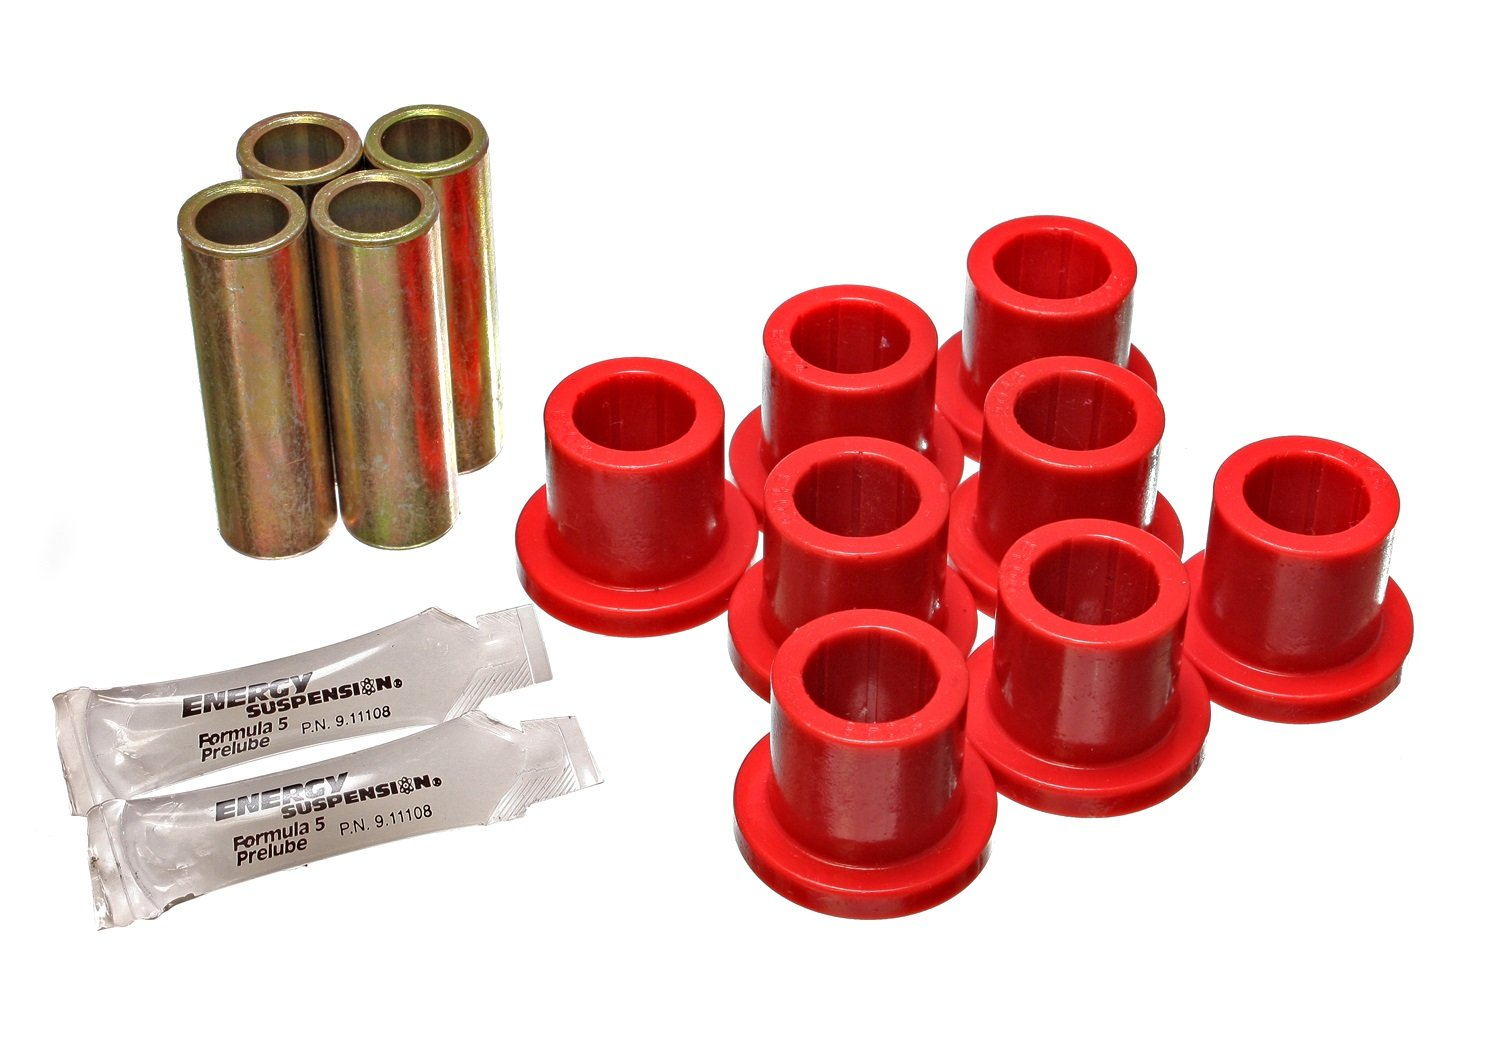 Energy Suspension 4.2107R Rear Spring Bushing for Ford Truck